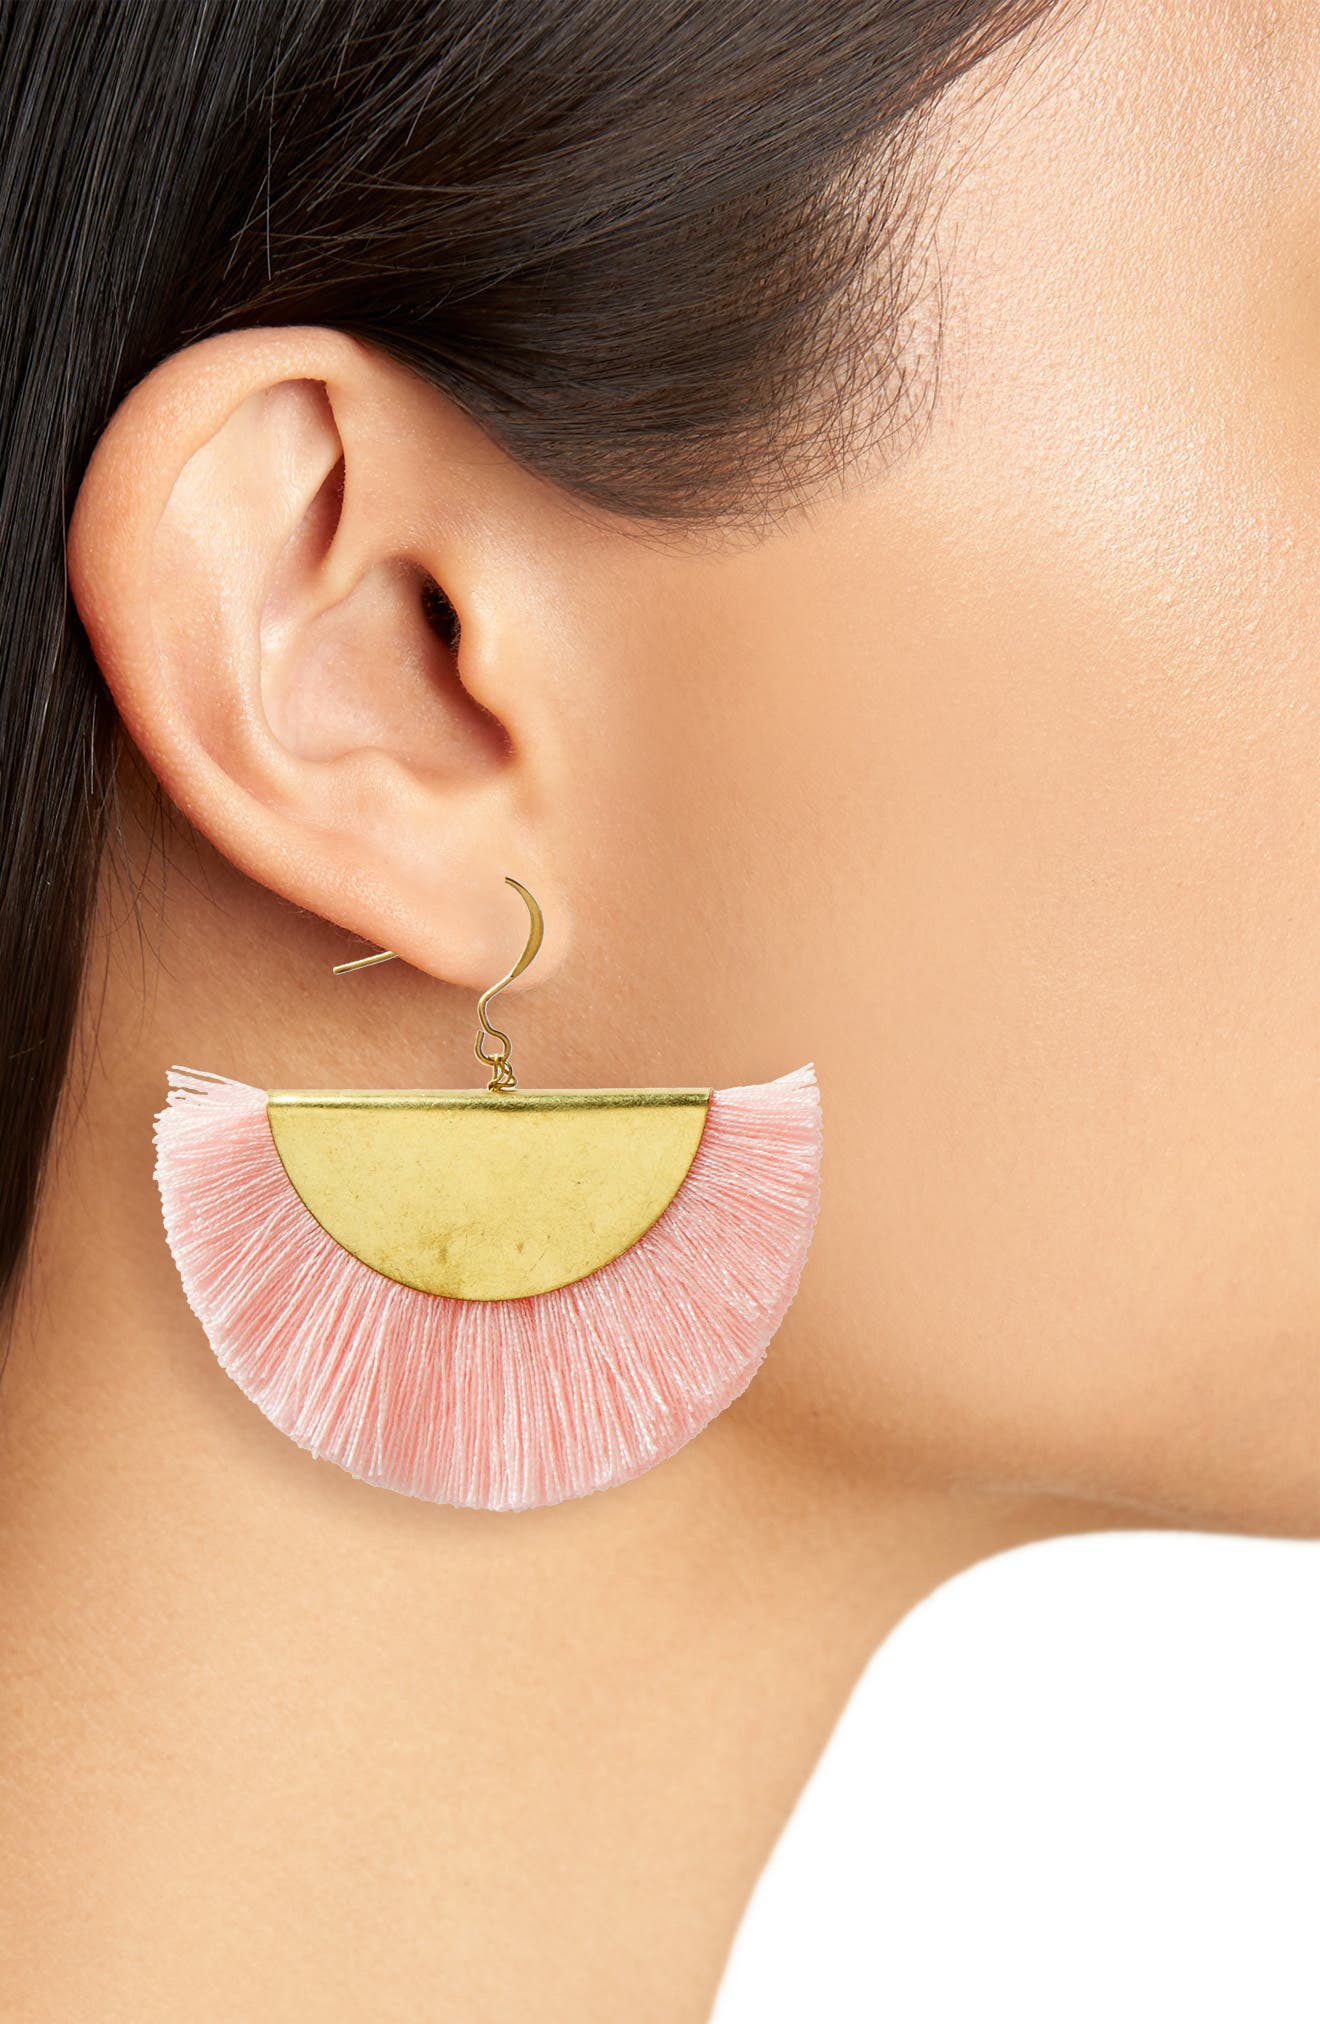 Fan Earrings,                             Alternate thumbnail 2, color,                             950